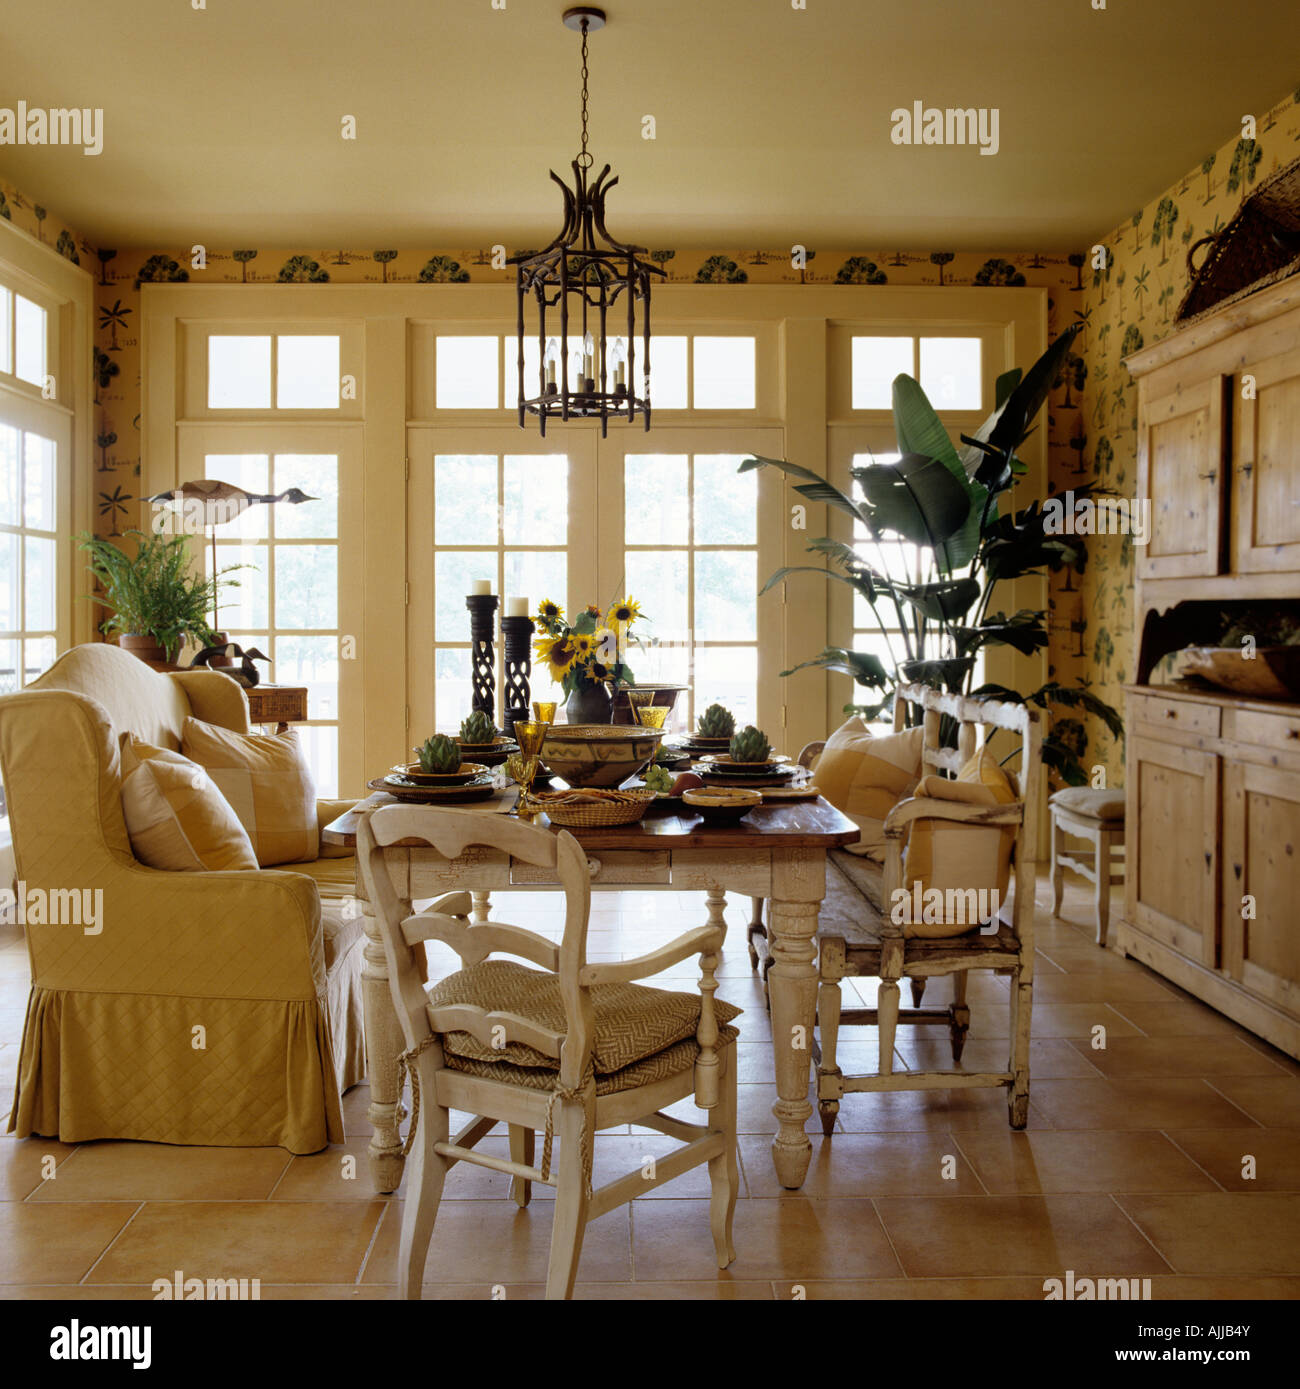 Dining Table With Sofa And Chairs In Bright Morning Room